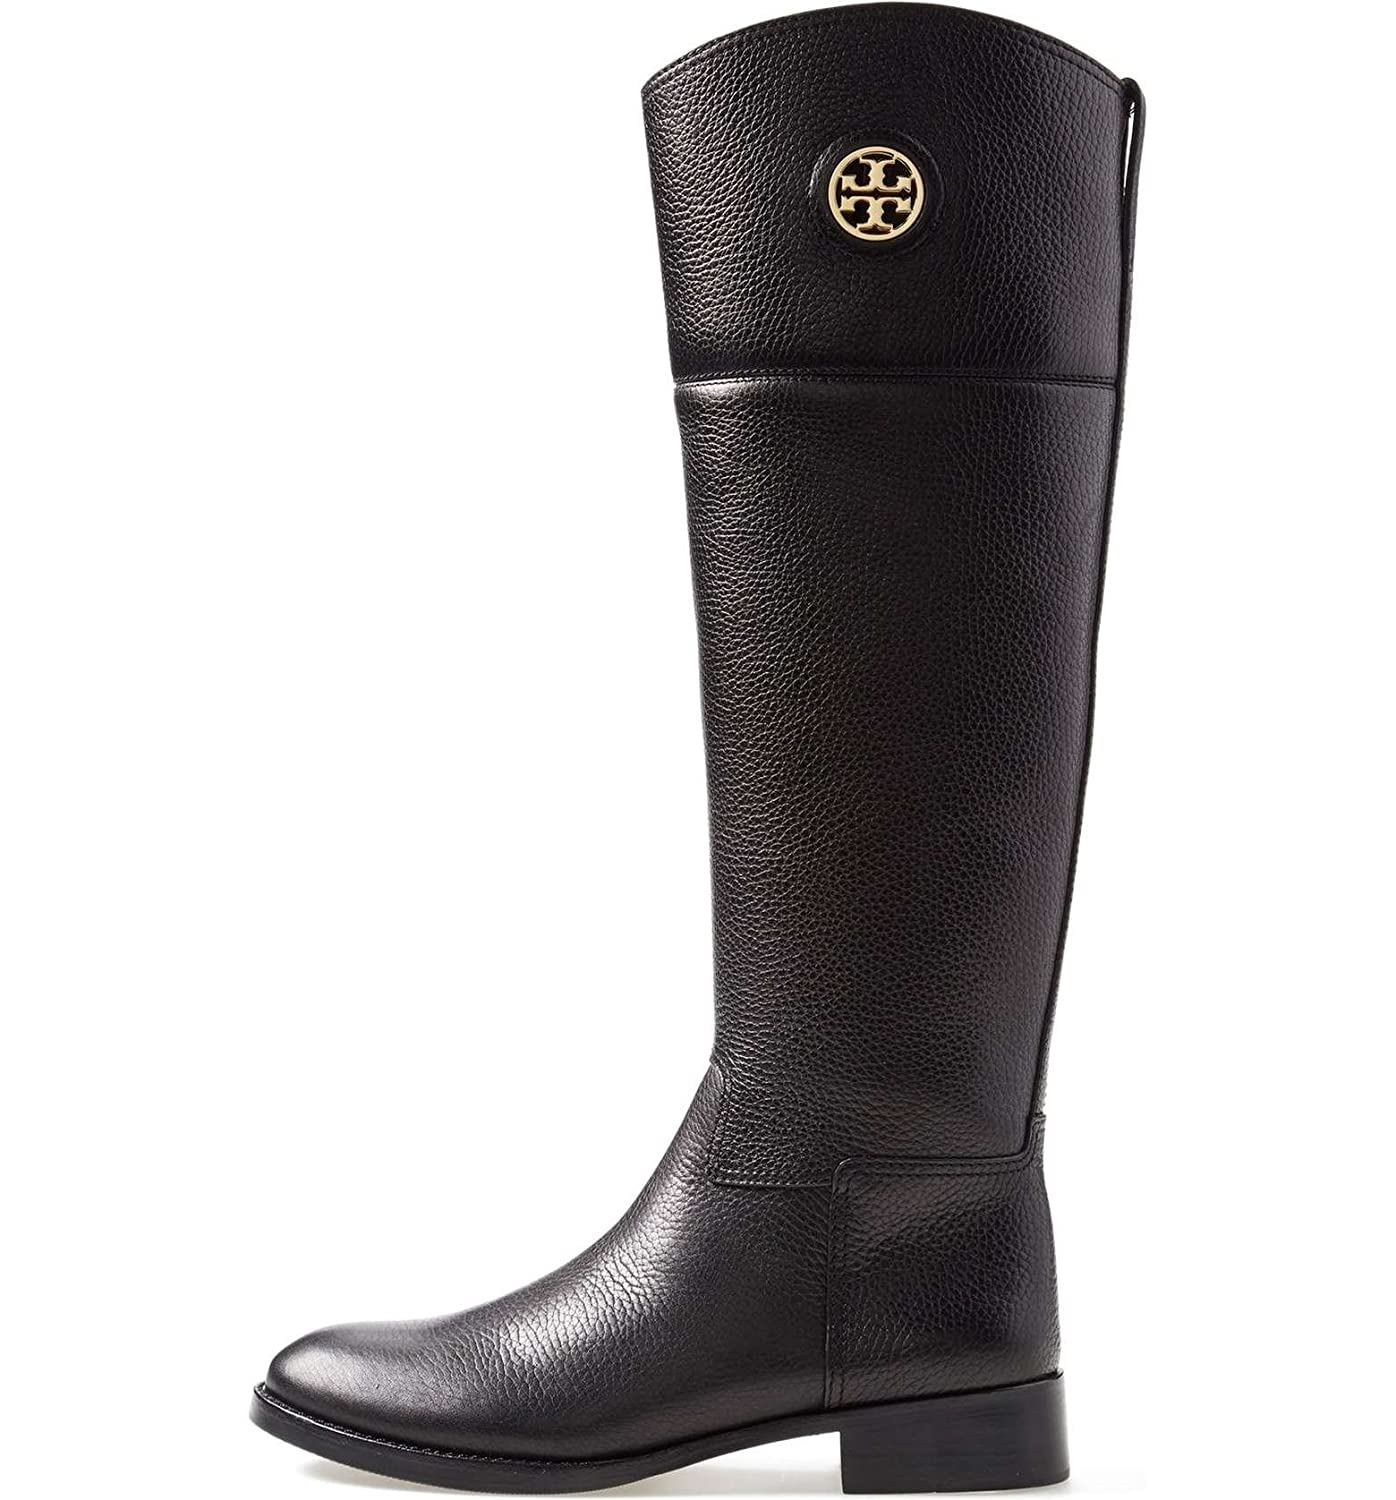 2b57c83e7d2 Amazon.com   Tory Burch Tumbled Leather Junction Riding Boots (5 ...